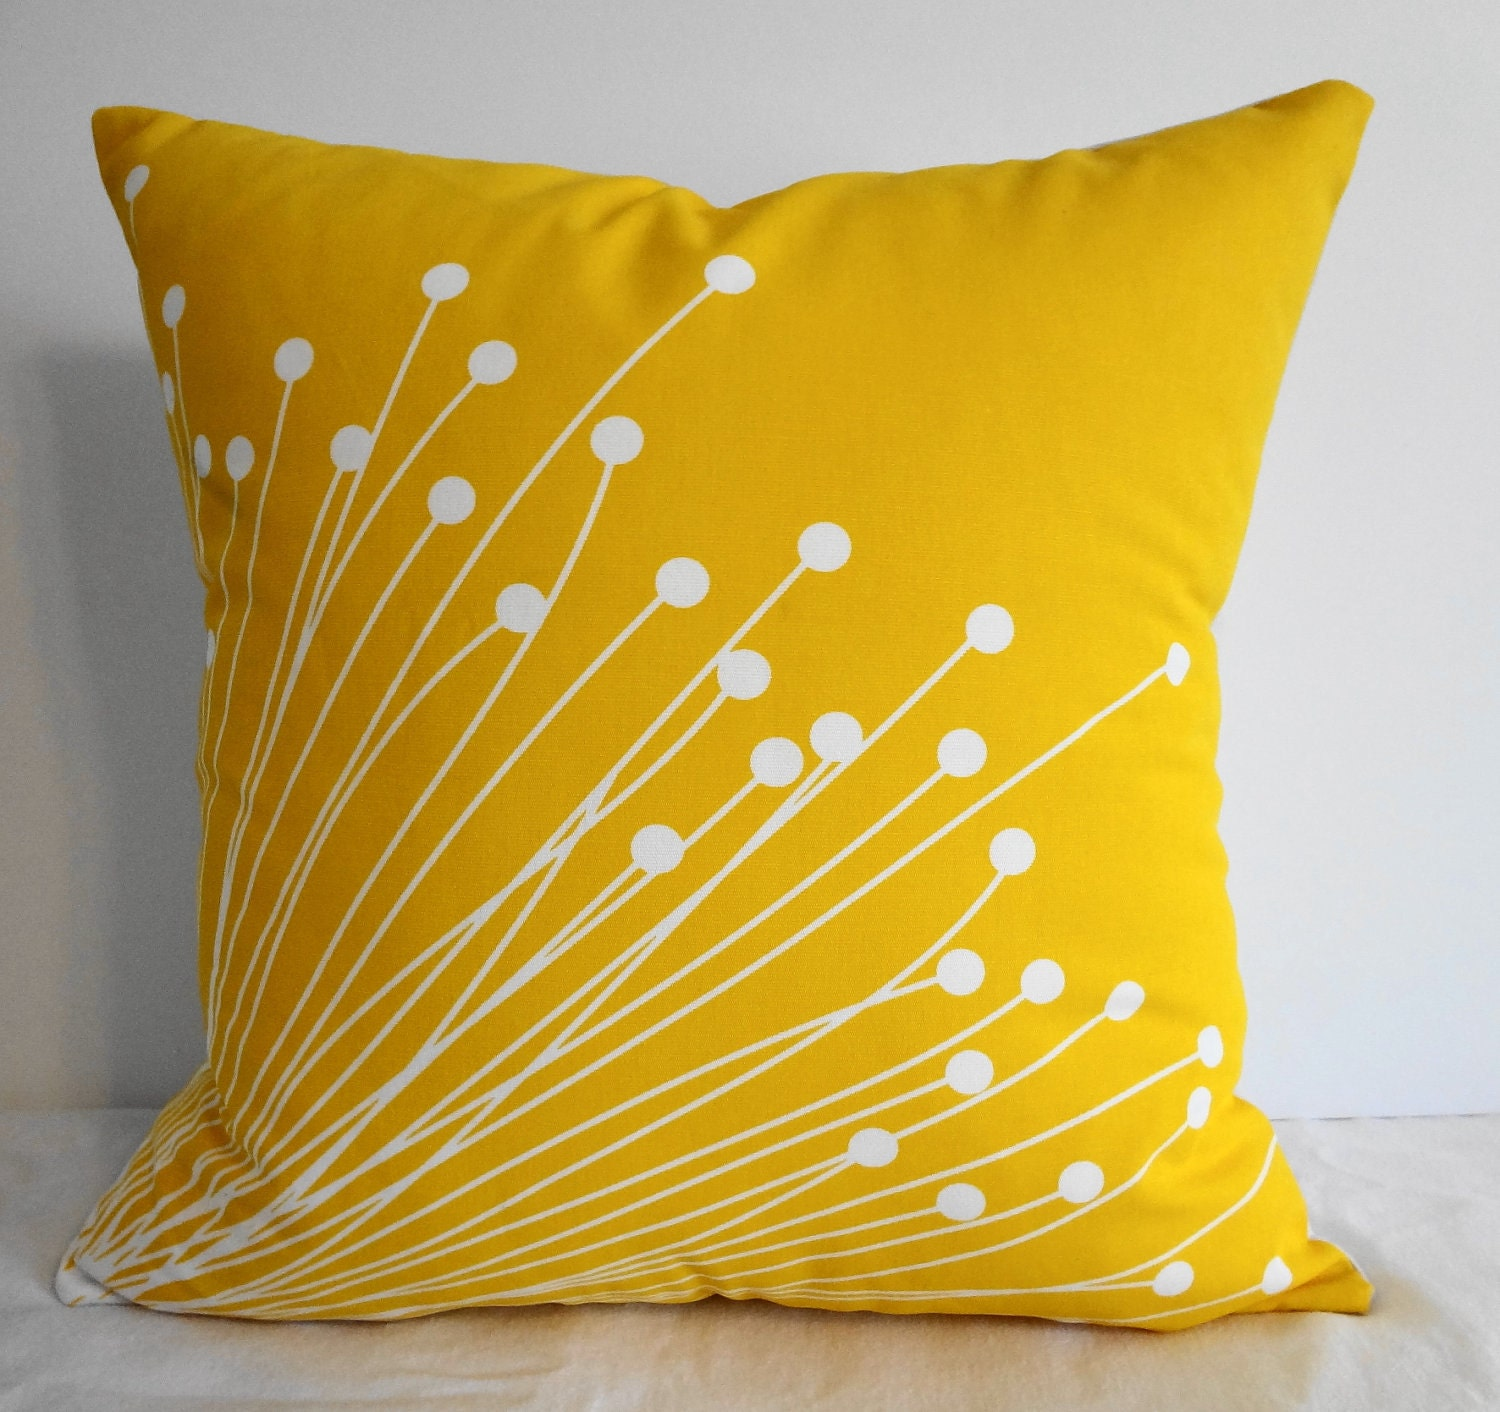 How To Make Decorative Throw Pillow Covers : Starburst Yellow Pillow Covers Decorative Throw Pillow